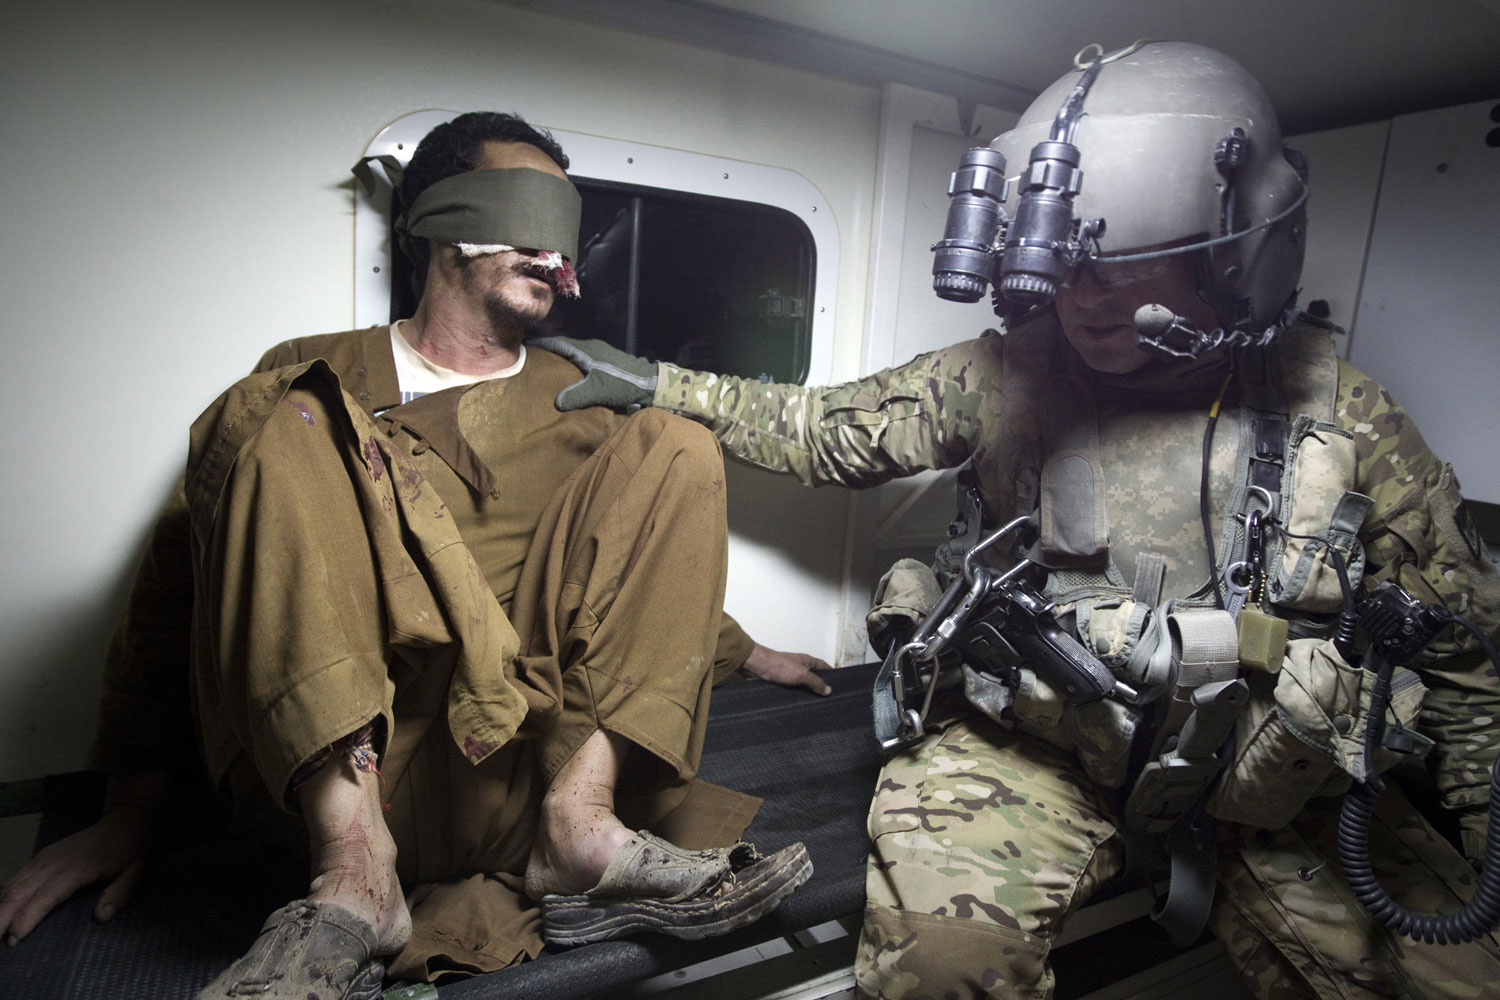 October 17, 2011. US Flight Medic, sergeant 1st class Joseph Lemons (R) from 159th Brigade Task Force Thunder comforts the blindfold Afghan civilian cook, Salman Gowhar in an ambulance on the way to the Kandahar Hospital Hero after airlifting him from the Khakriz village in Kandahar province. Salman was injured by the steam blown on his face and eyes while cooking in his village in Kandahar province.